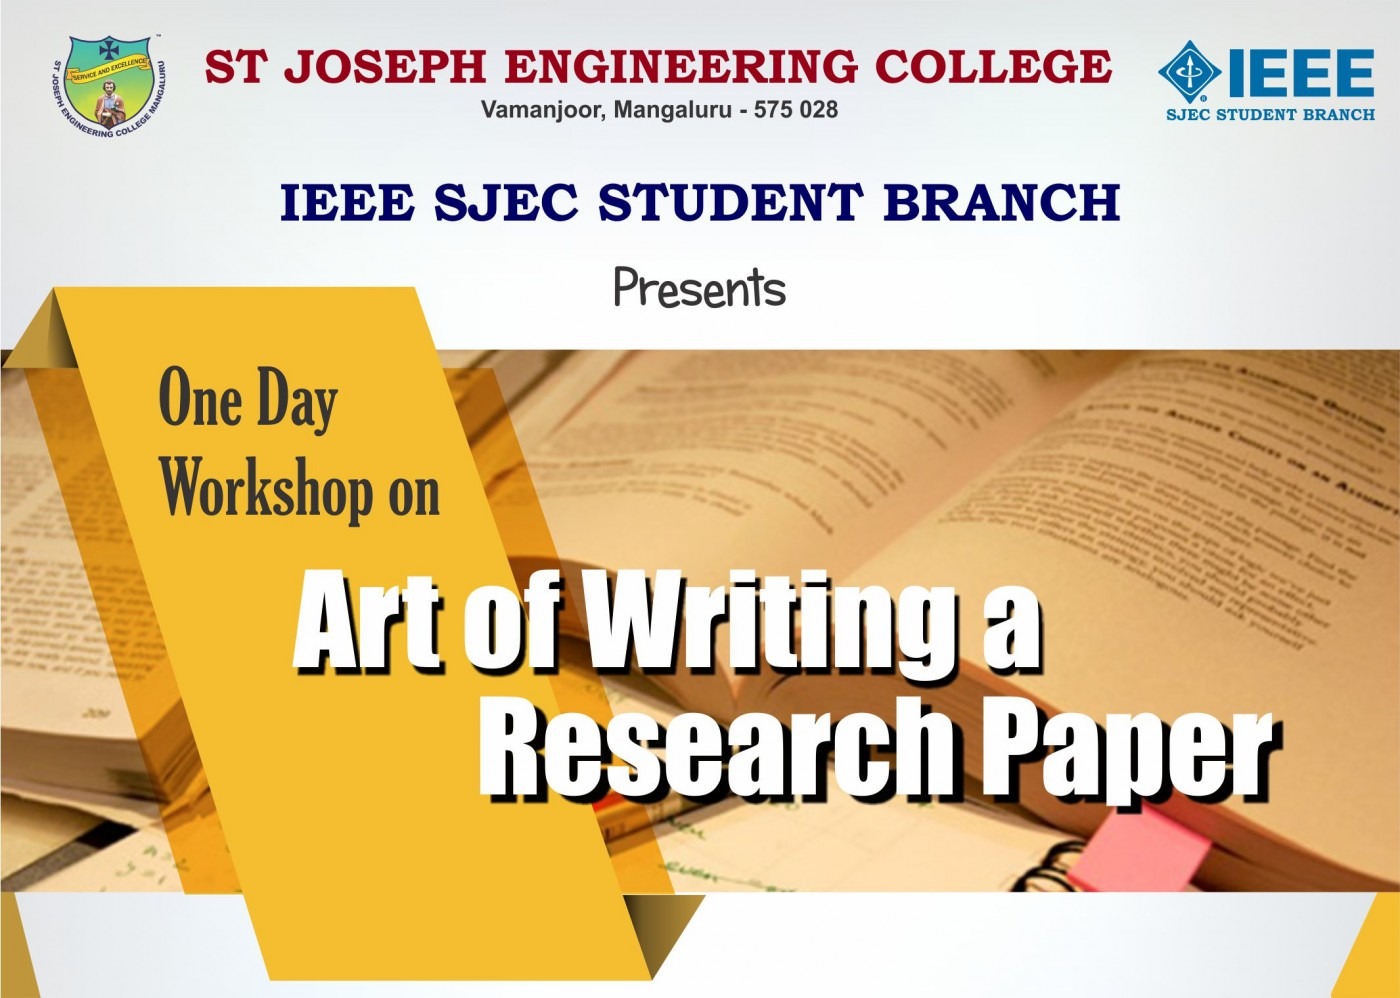 005 Workshop Banner Research Paper Writing Unique Papers A Complete Guide Pdf Download James D Lester 1400